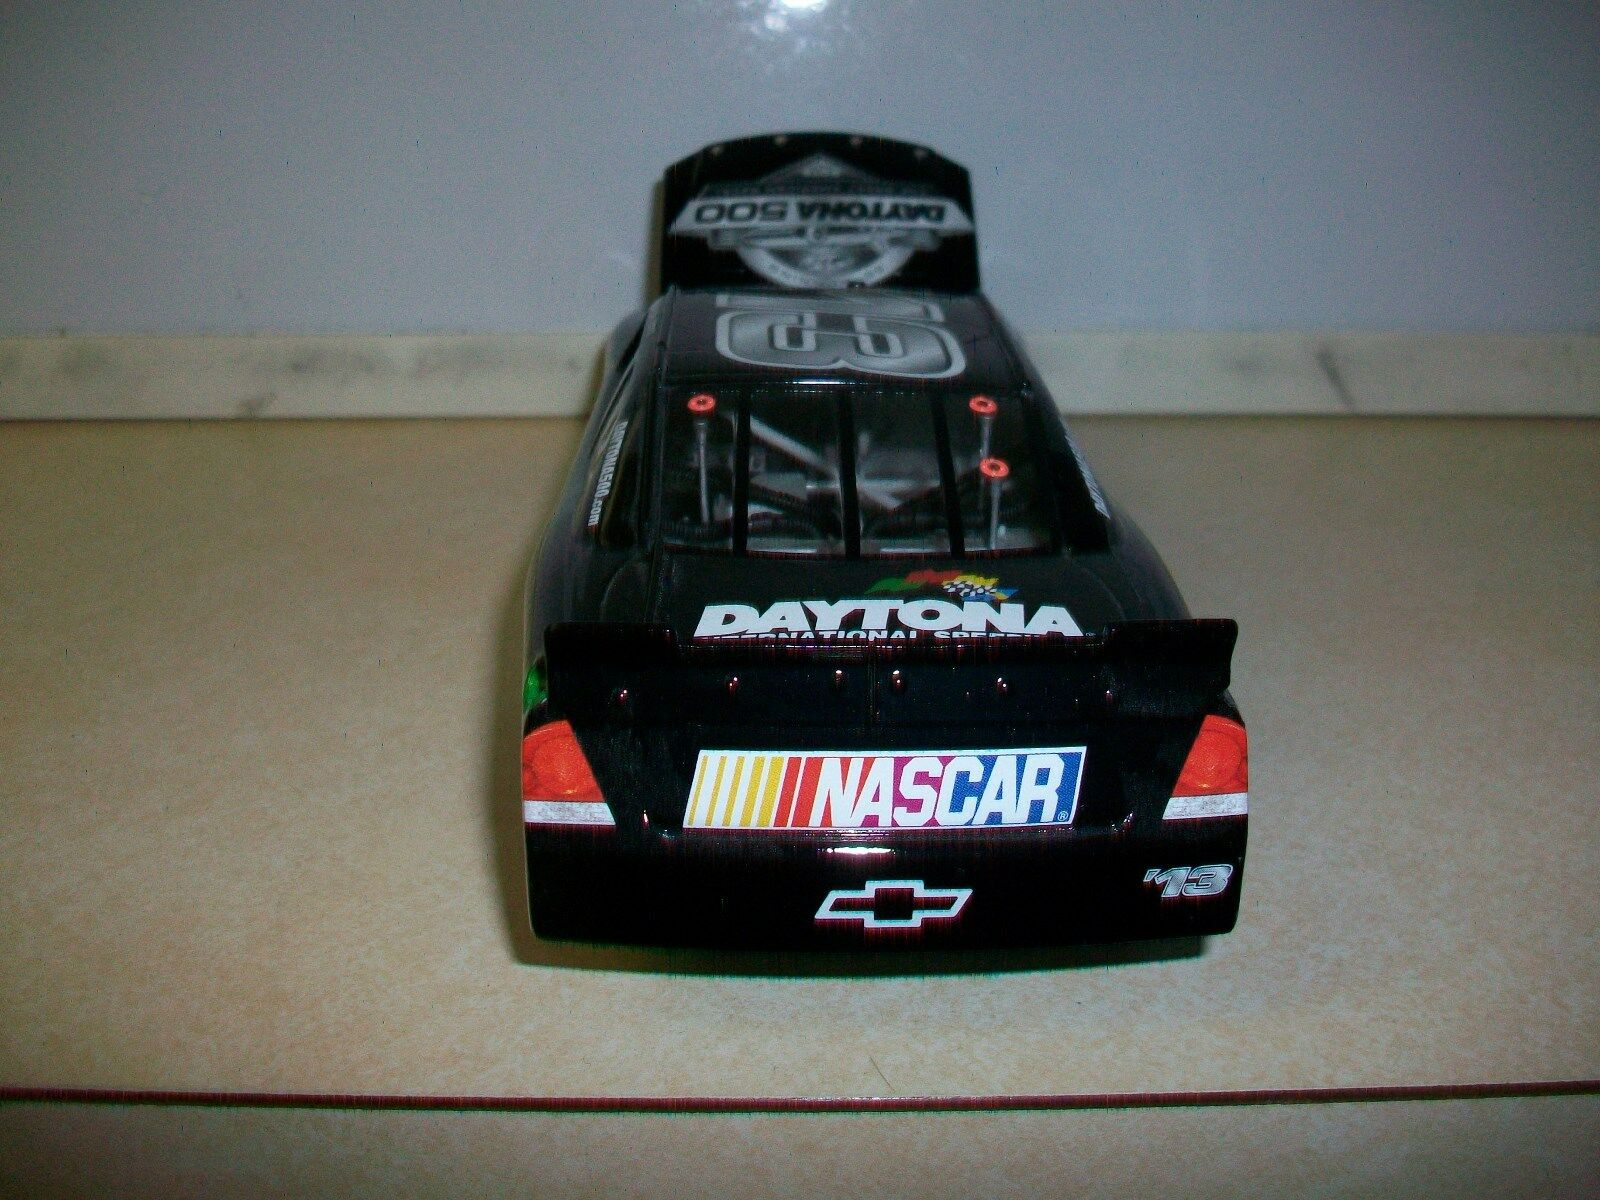 New '13 Chevrolet Chevrolet Chevrolet 1 24 Diecast - 2013 Daytona 500 Limited Edition Collectible 9b64f4